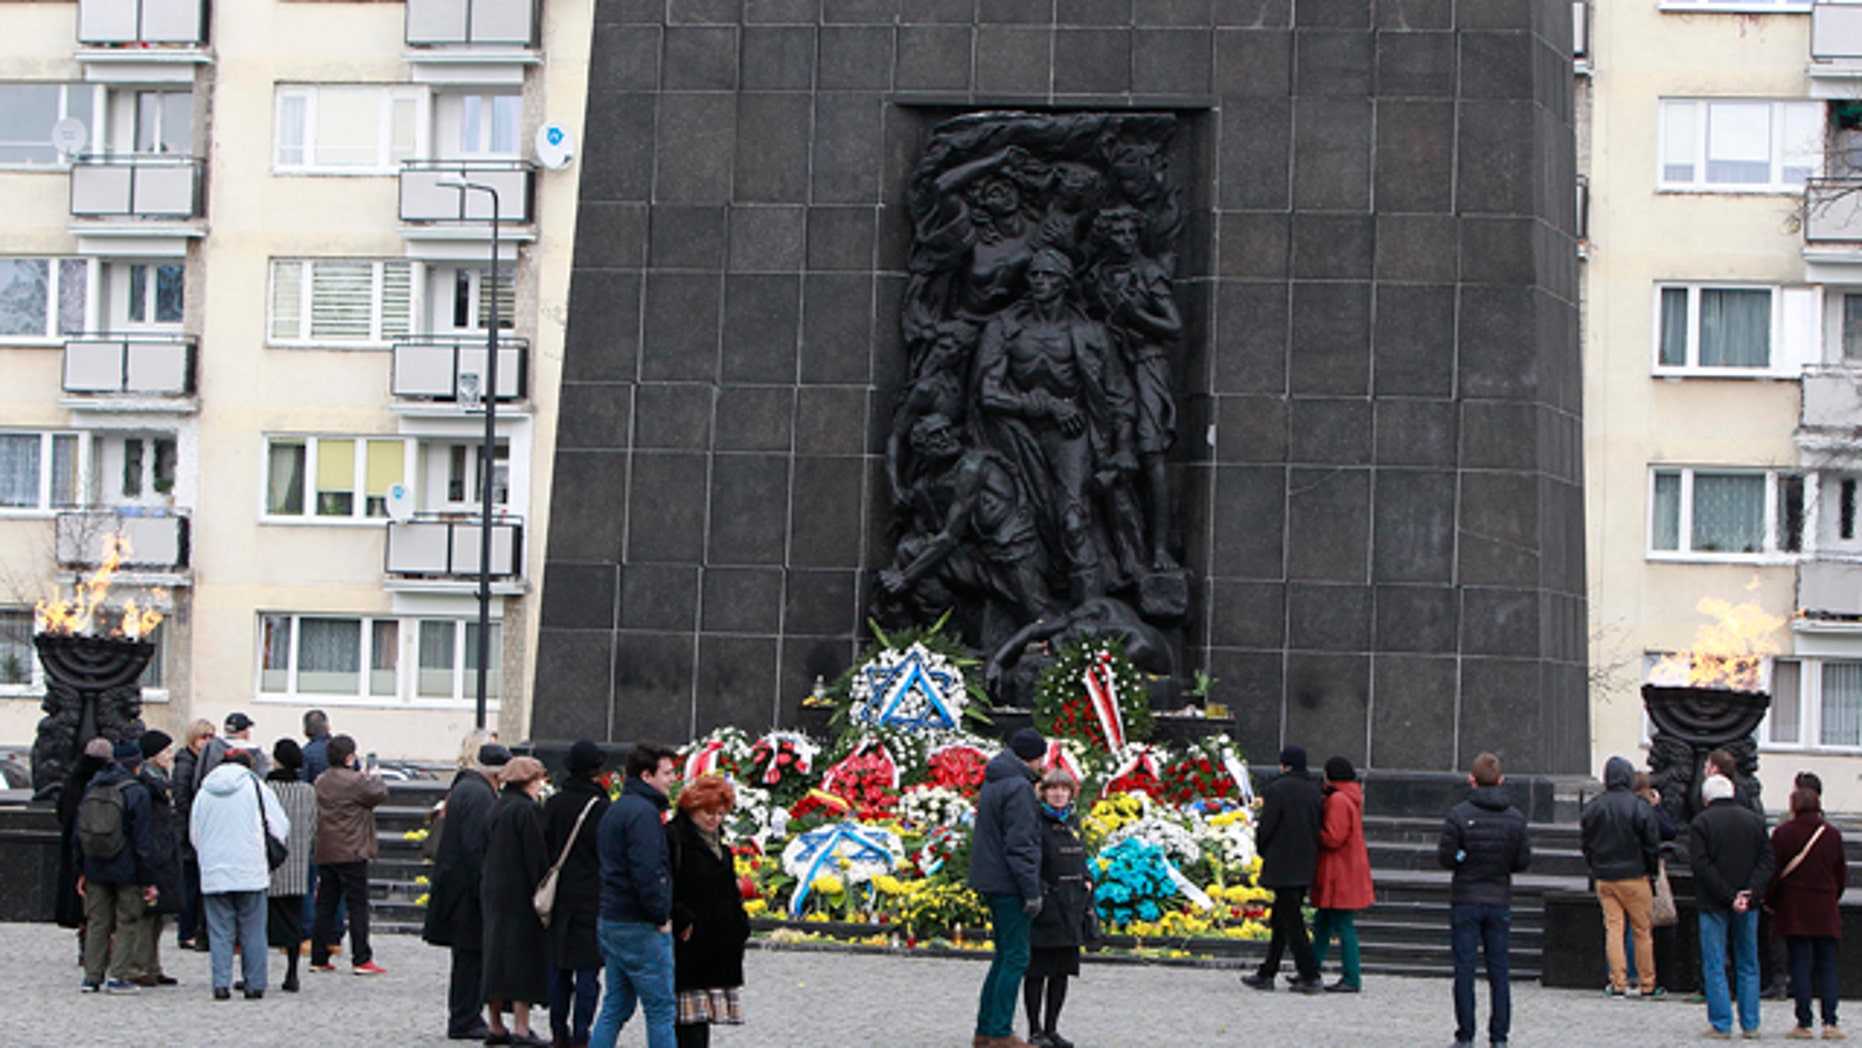 April 19, 2015: People gather in front of the monument to the Heroes of the Ghetto, on the 72nd anniversary of the Warsaw Ghetto Uprising, in Warsaw. (AP Photo/Czarek Sokolowski)